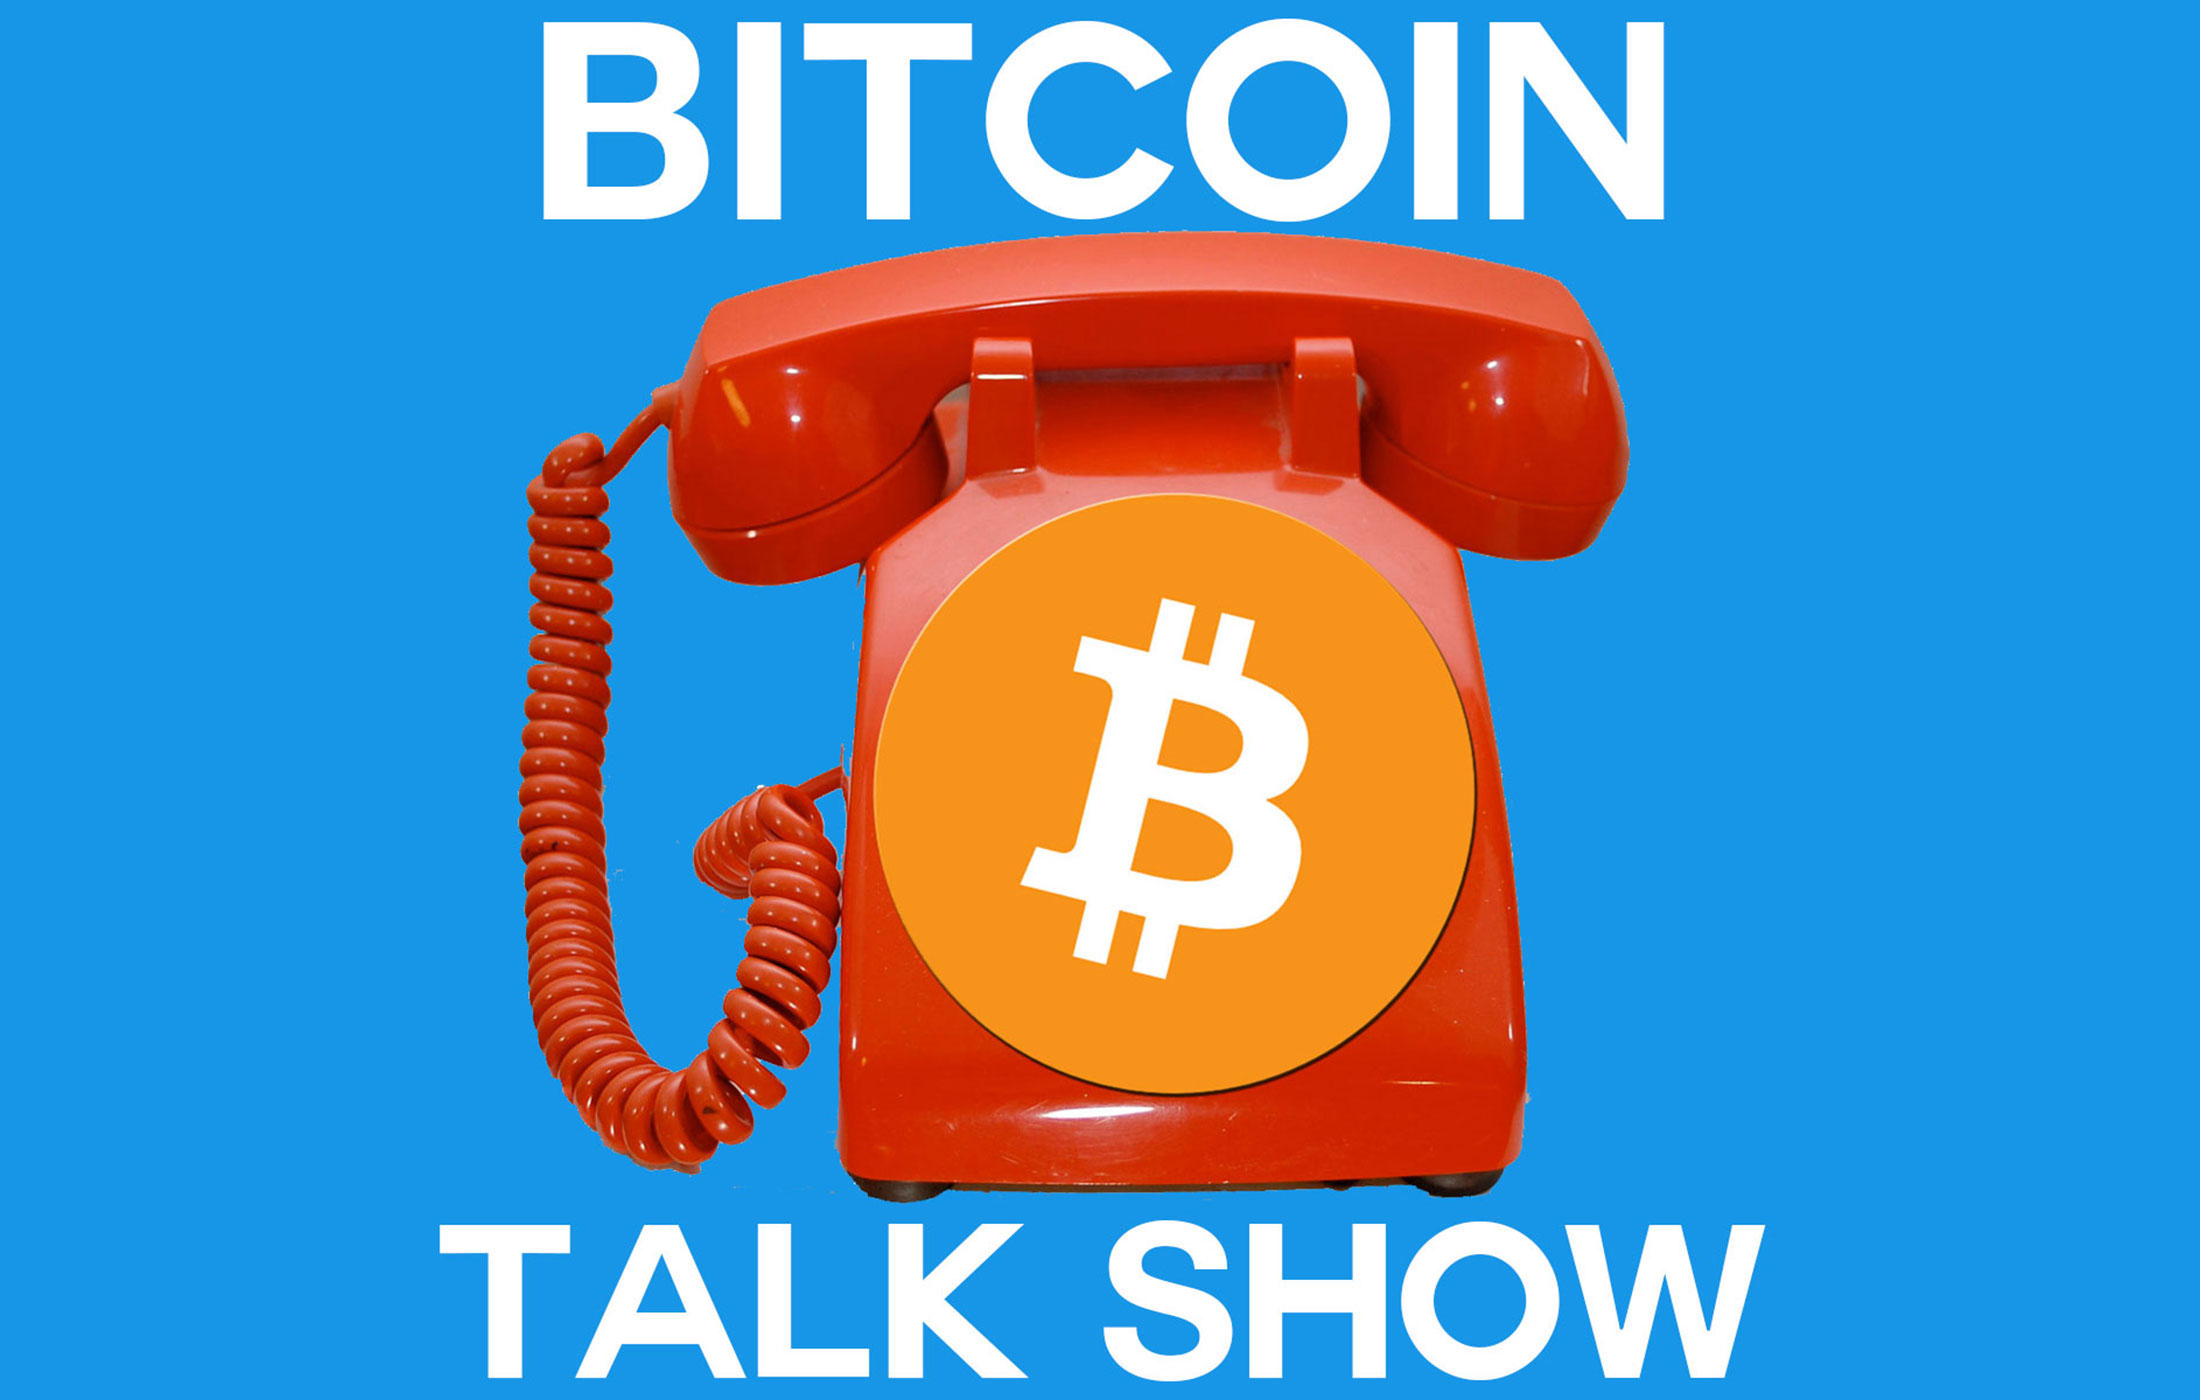 Bitcoin-Talk-Show-Blue-2200